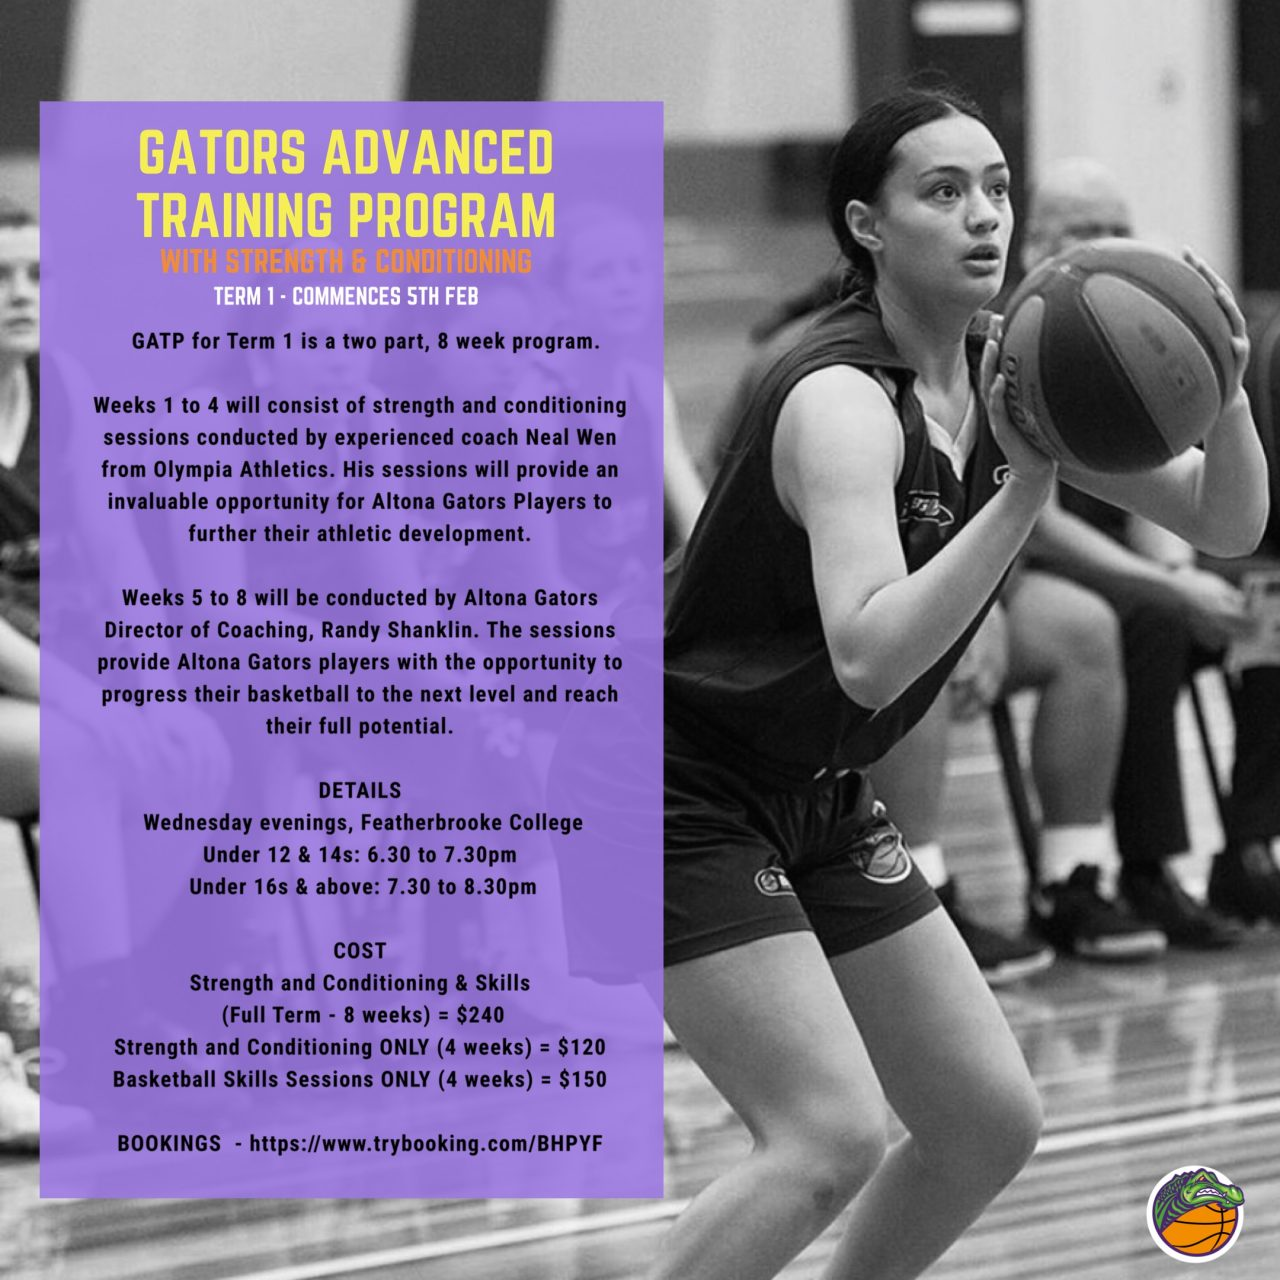 https://altonabasketball.com.au/wp-content/uploads/2020/01/Altona-Gators-Advanced-Training-Program-GATP-Term-1-2020-Updated-1280x1280.jpg